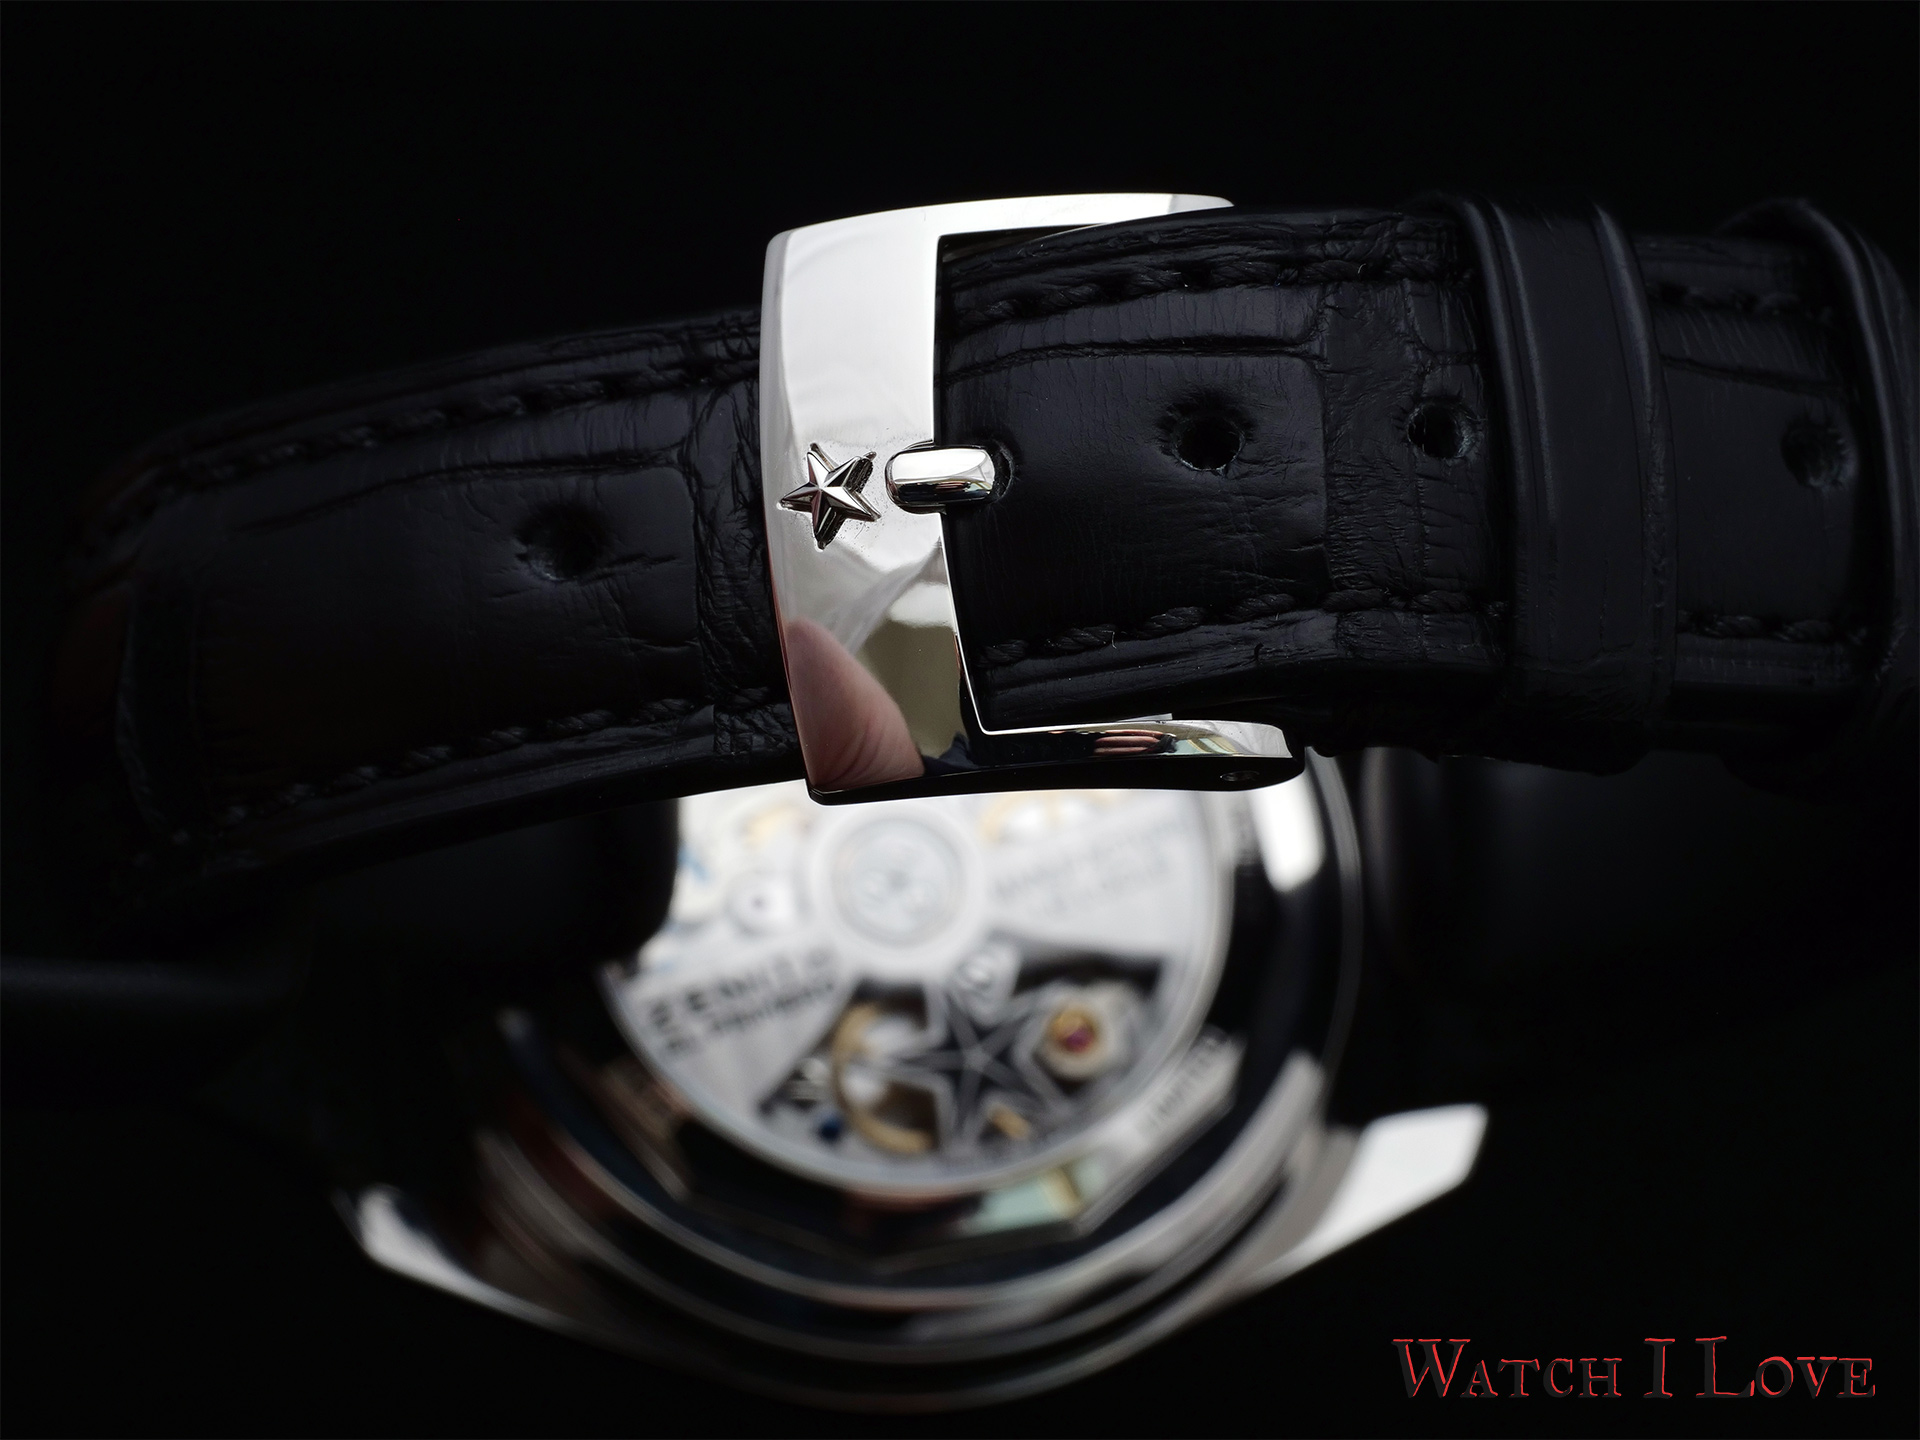 The buckle used for the El Primero 1969